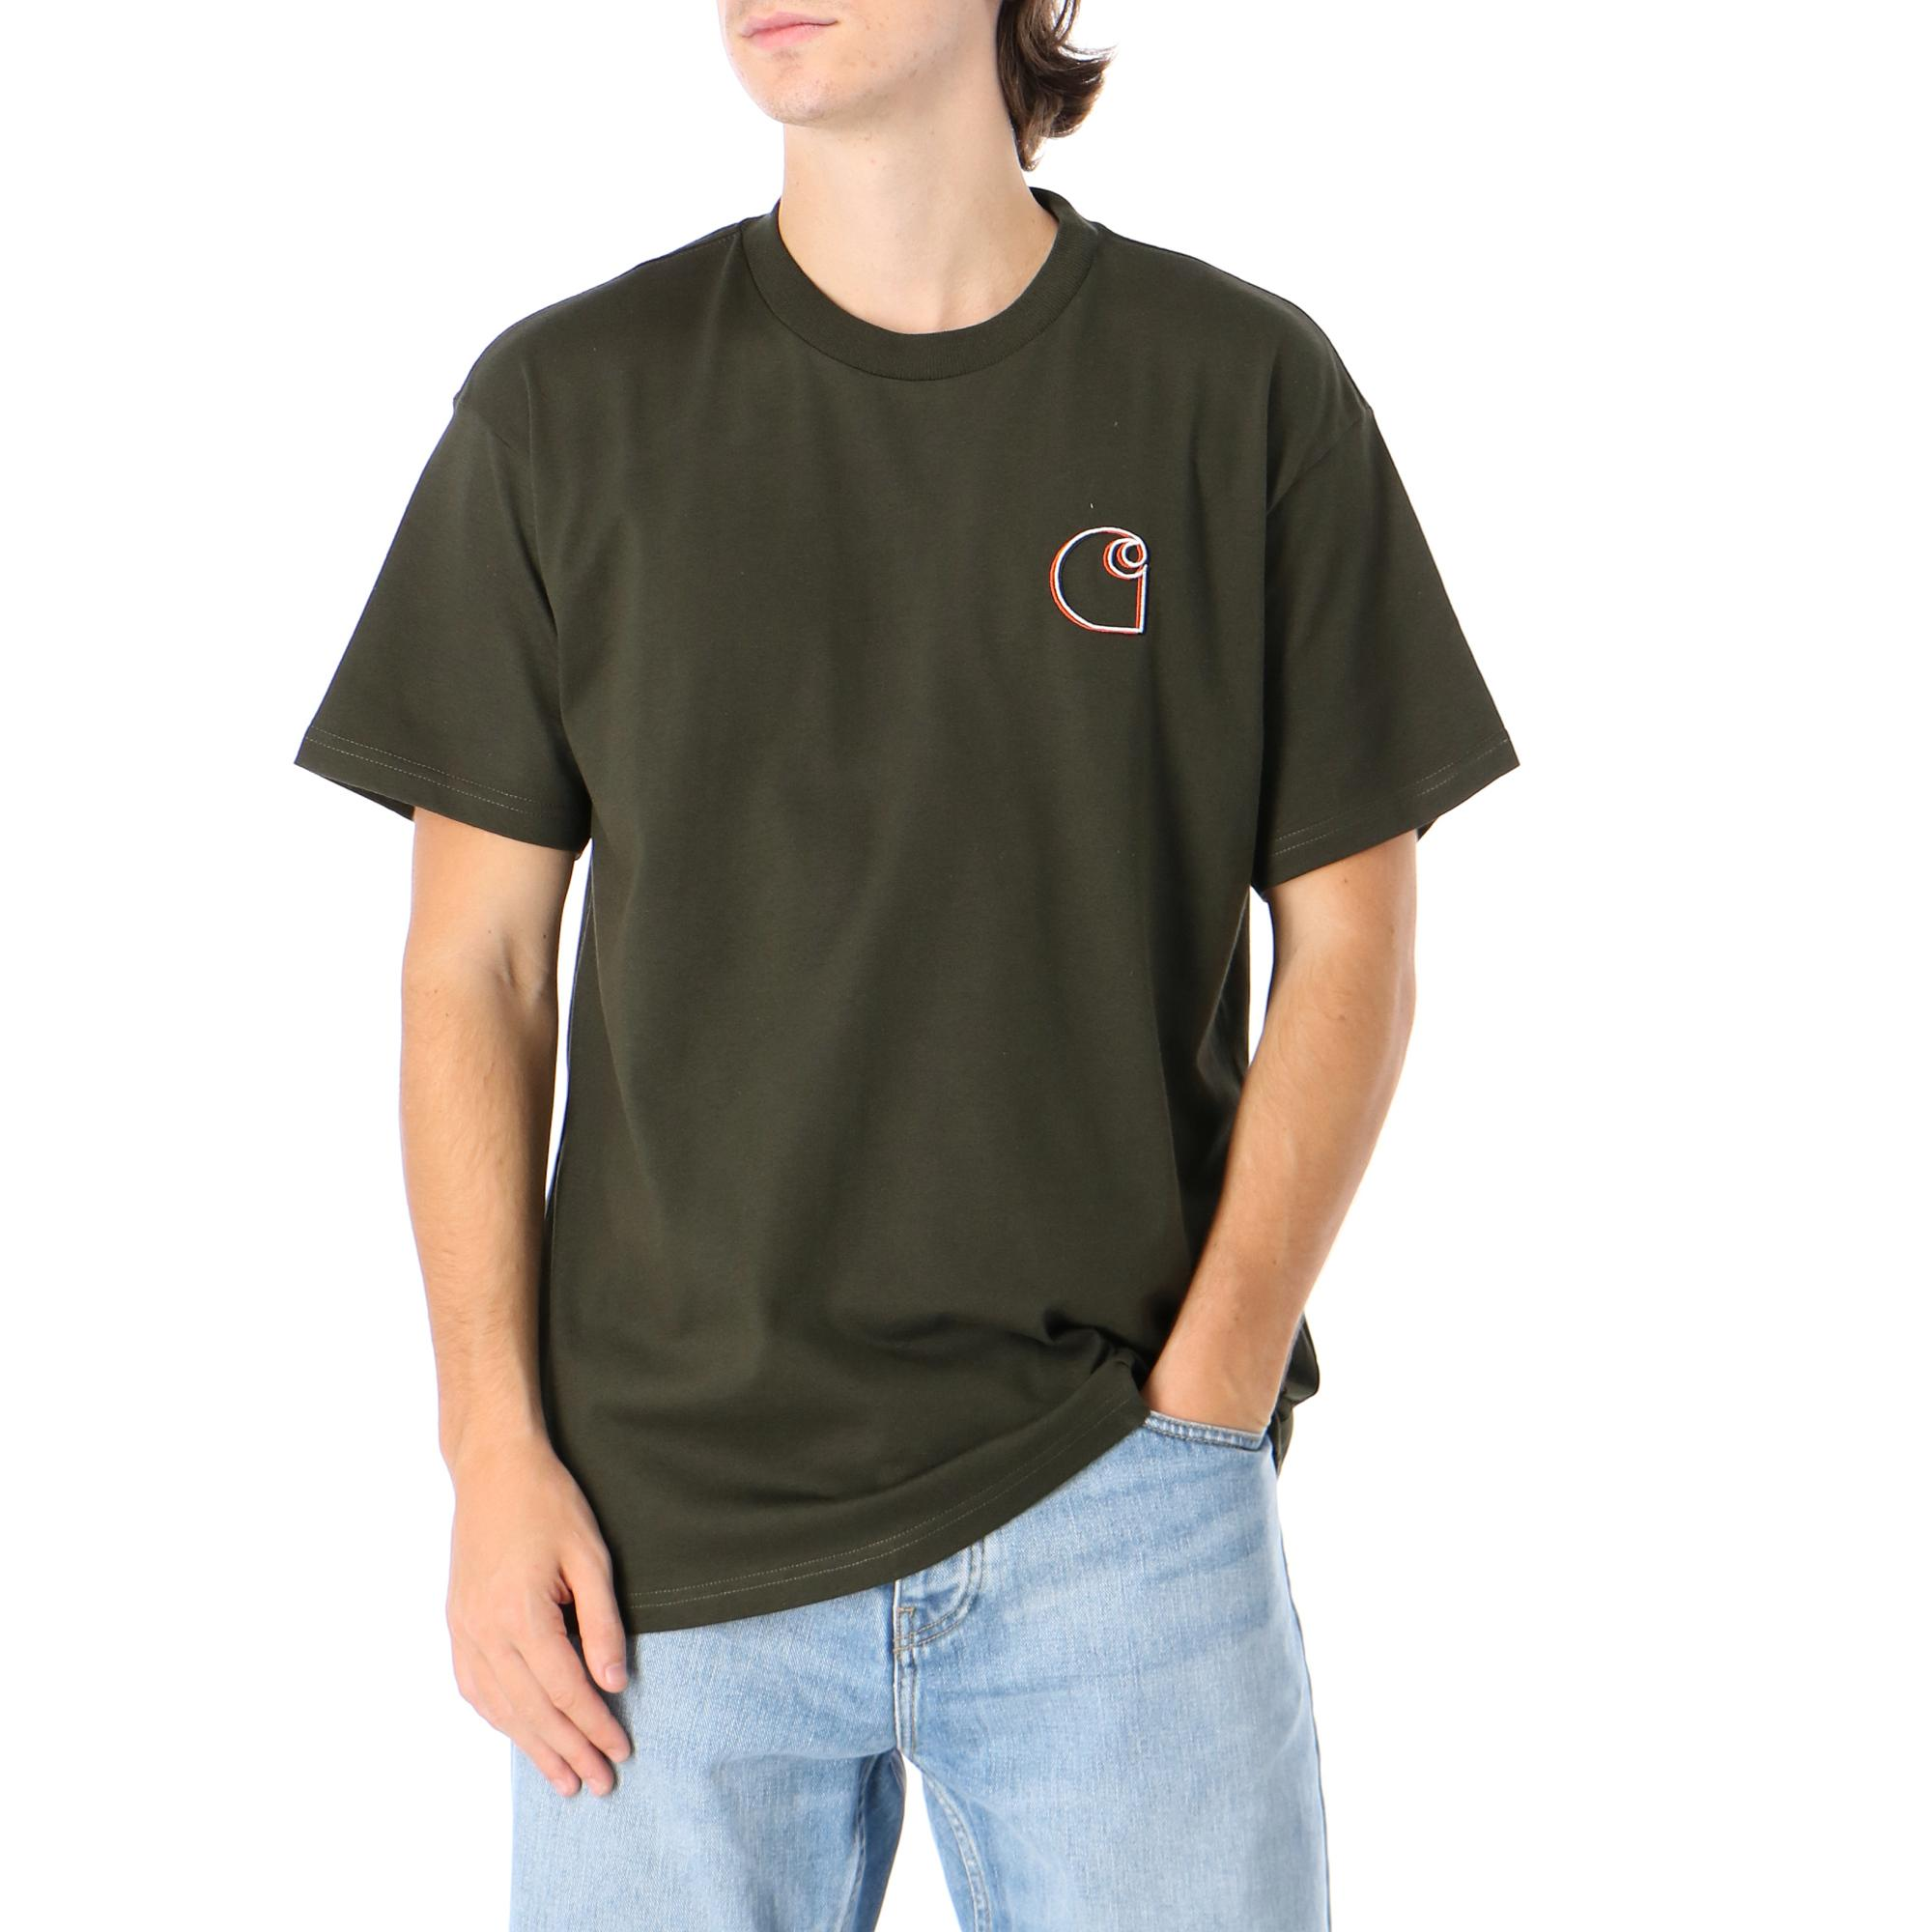 Carhartt S/s Commission Logo T-shirt CYPRESS